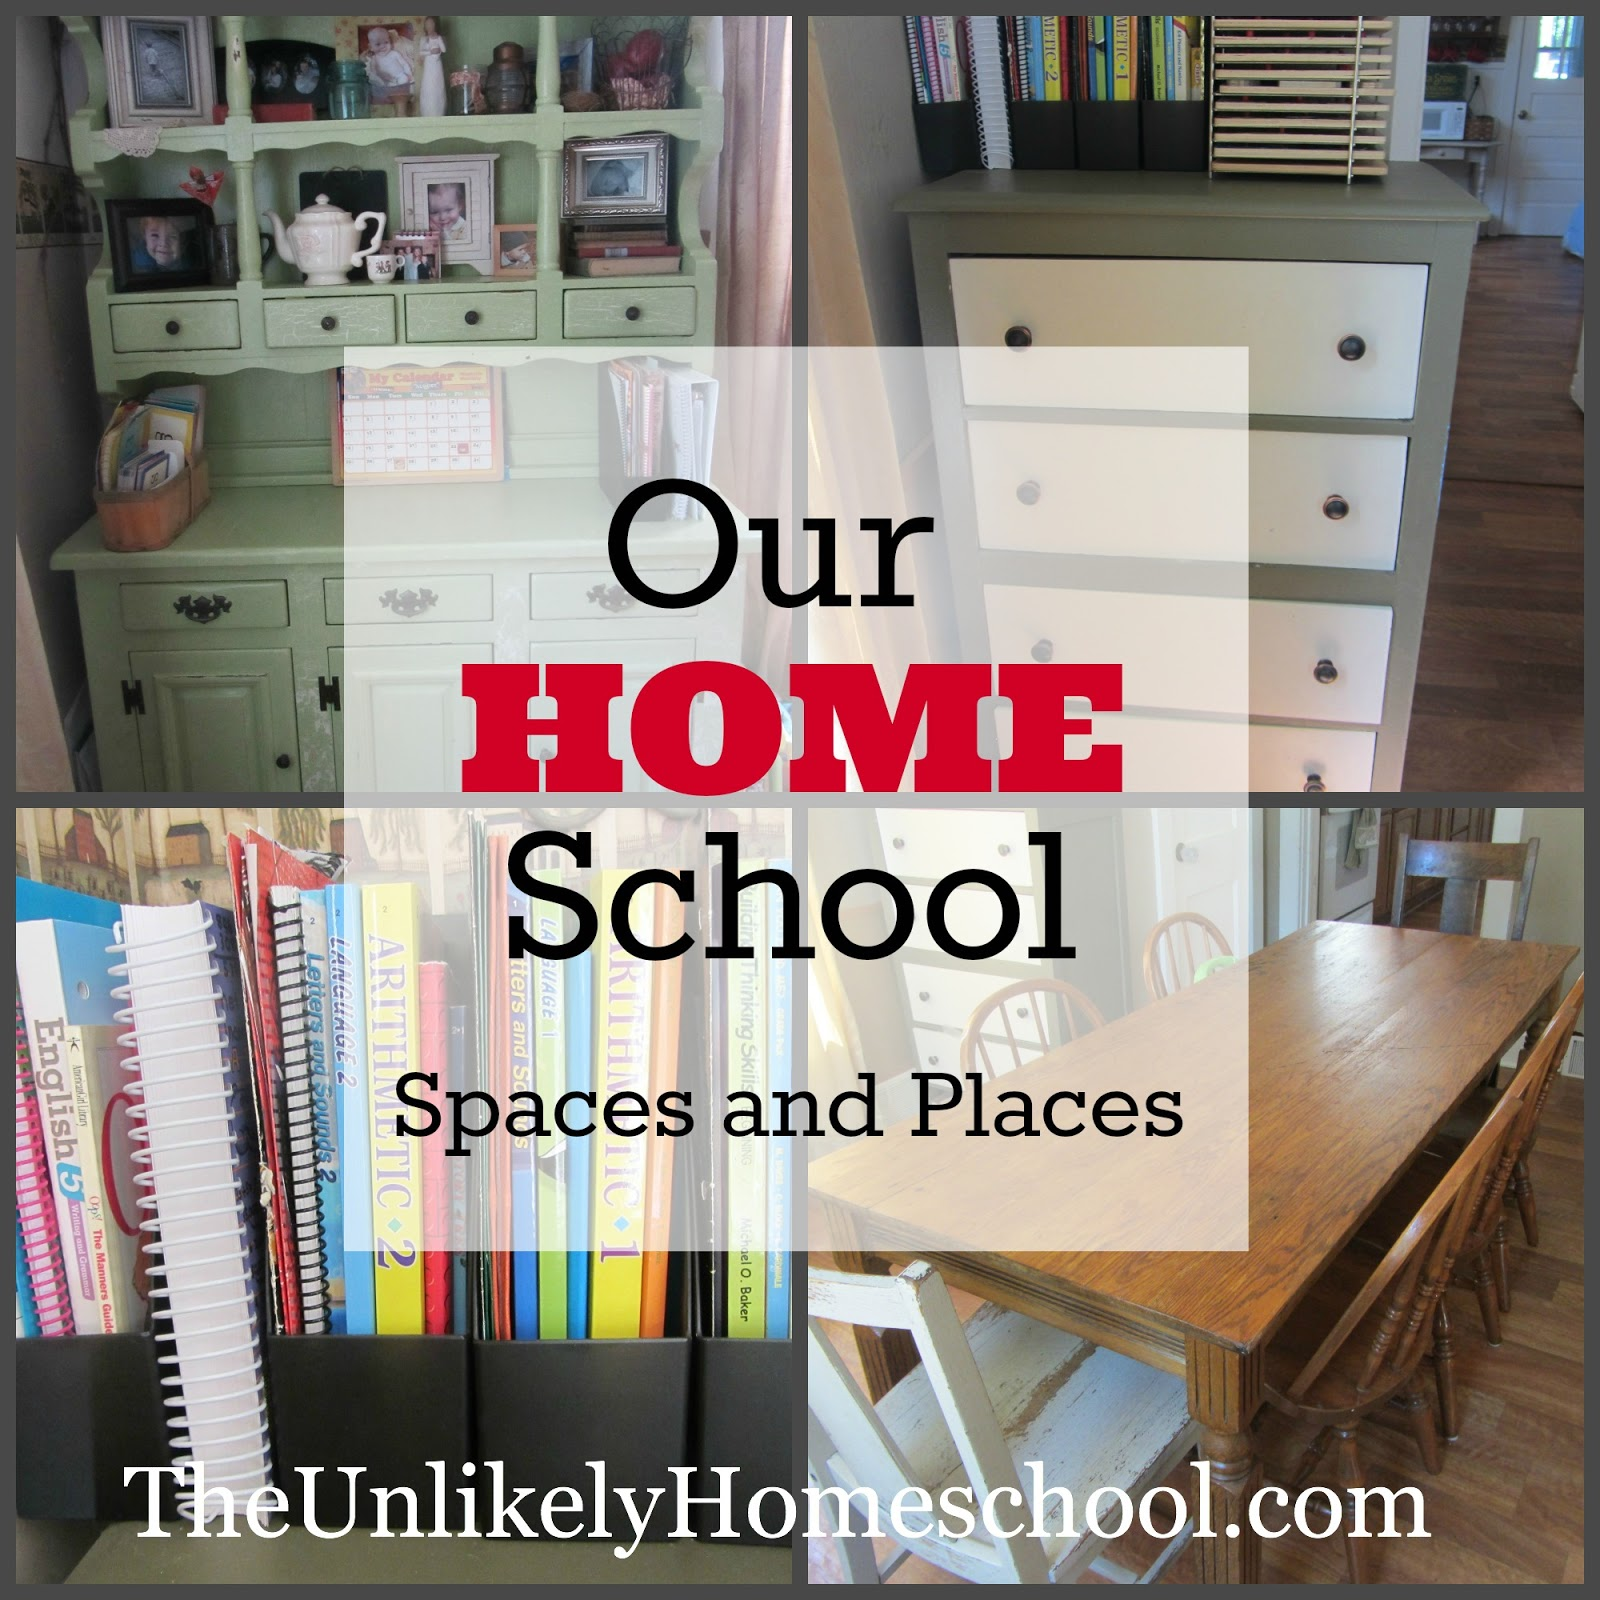 The Unlikely Homeschool: Our HOME School Places and Spaces 2013